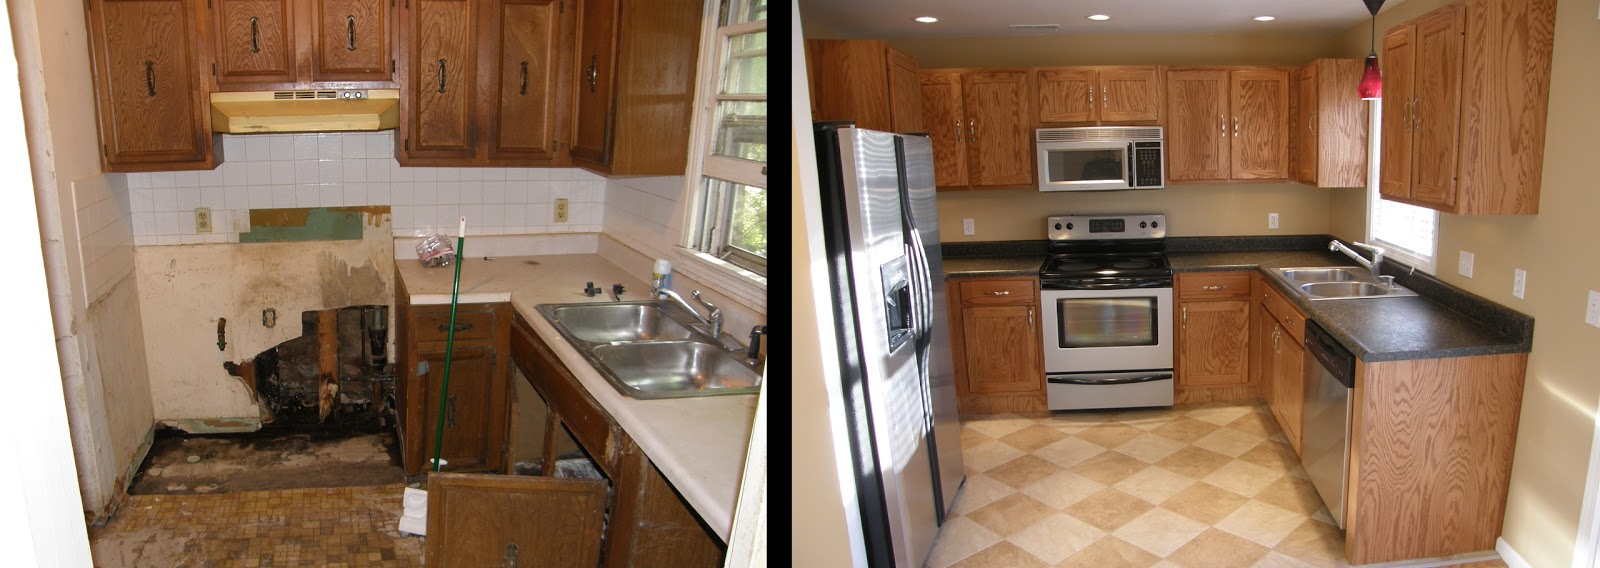 small kitchen remodel before and after ~ kass